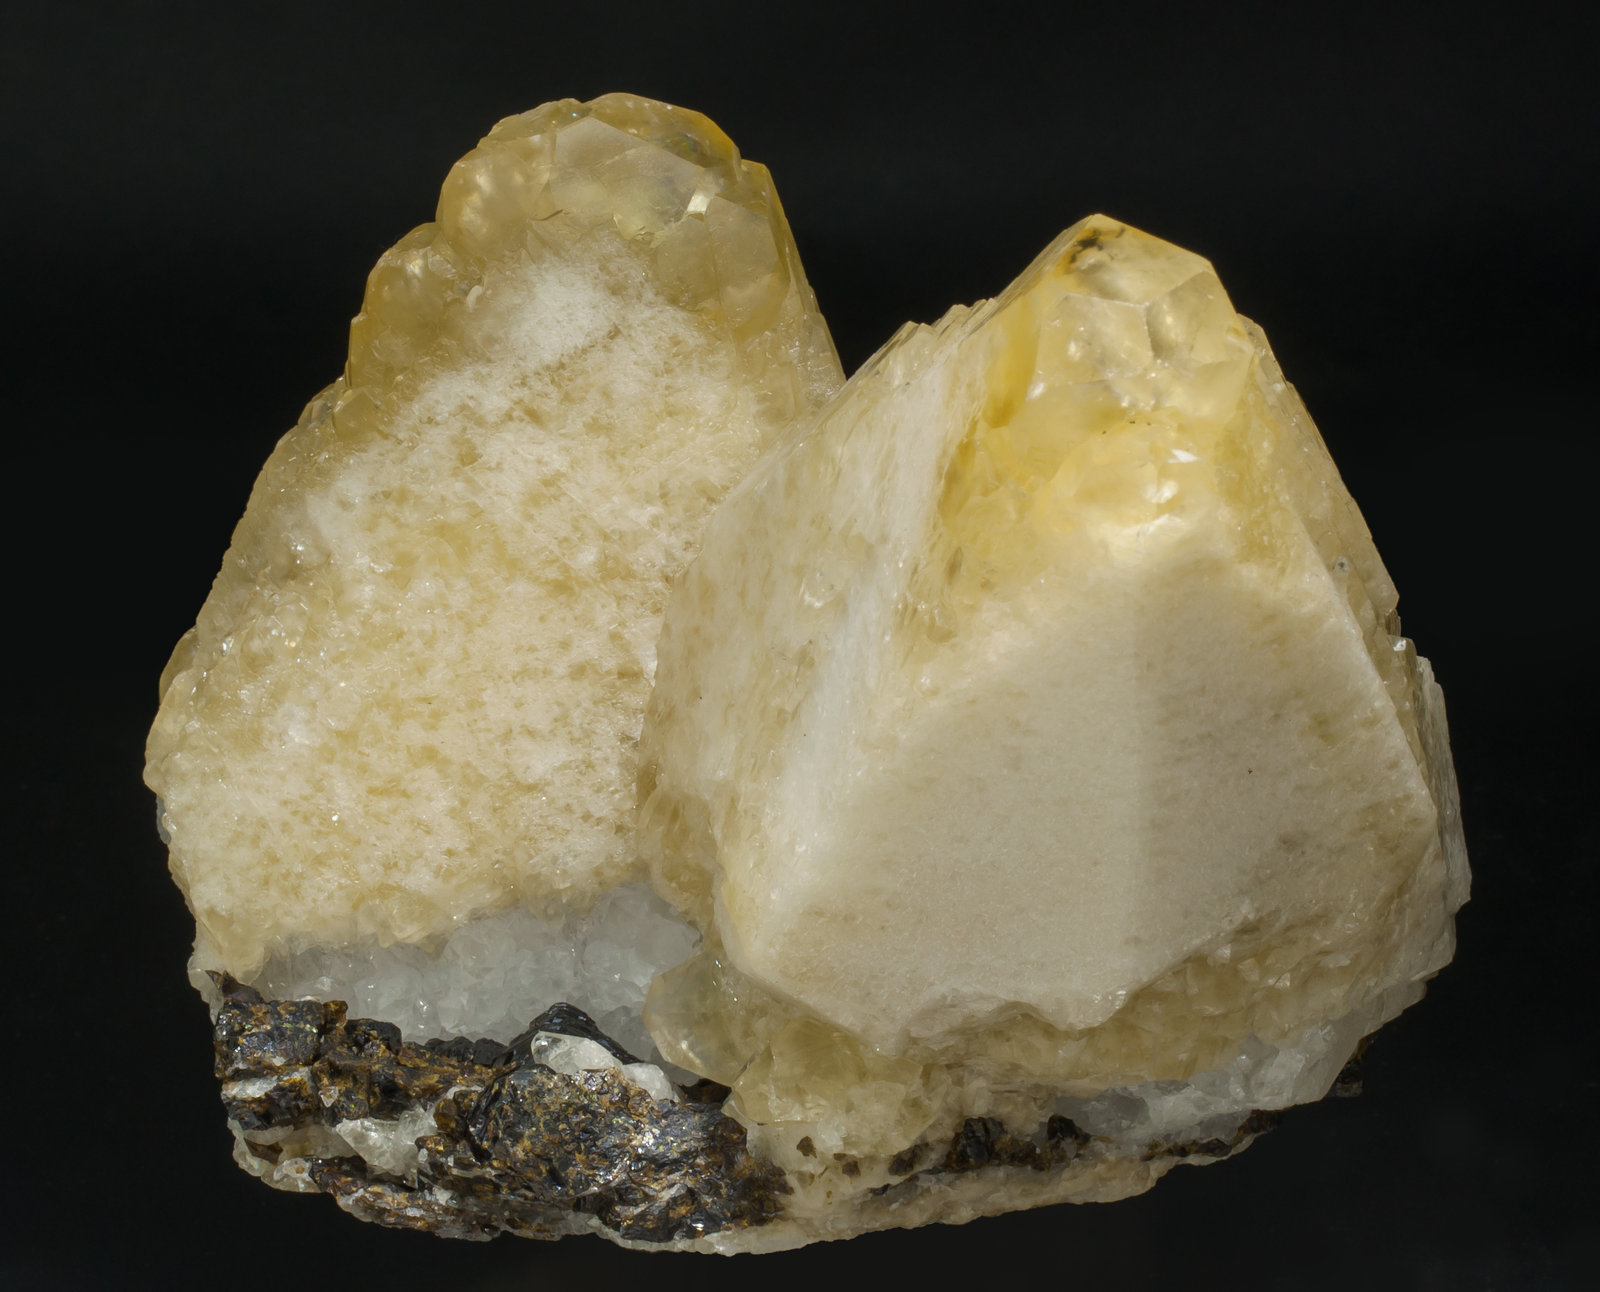 specimens/s_imagesAE2/Calcite-TF88AE2r.jpg